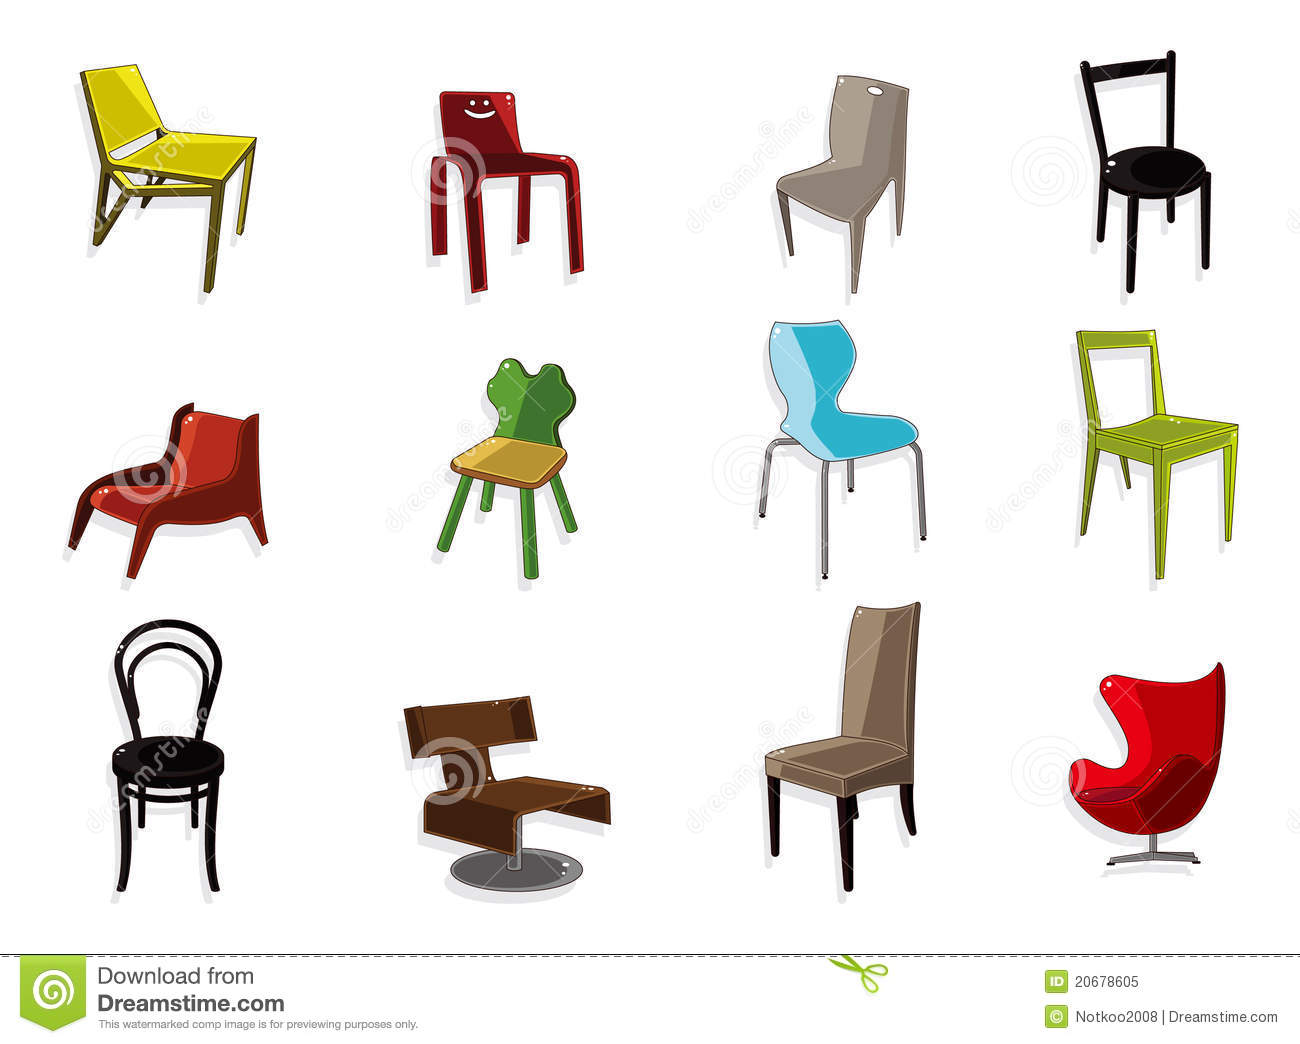 Cartoon Chair Furniture Icon Set Royalty Free Stock Photo  : cartoon chair furniture icon set 20678605 from dreamstime.com size 1300 x 1044 jpeg 93kB